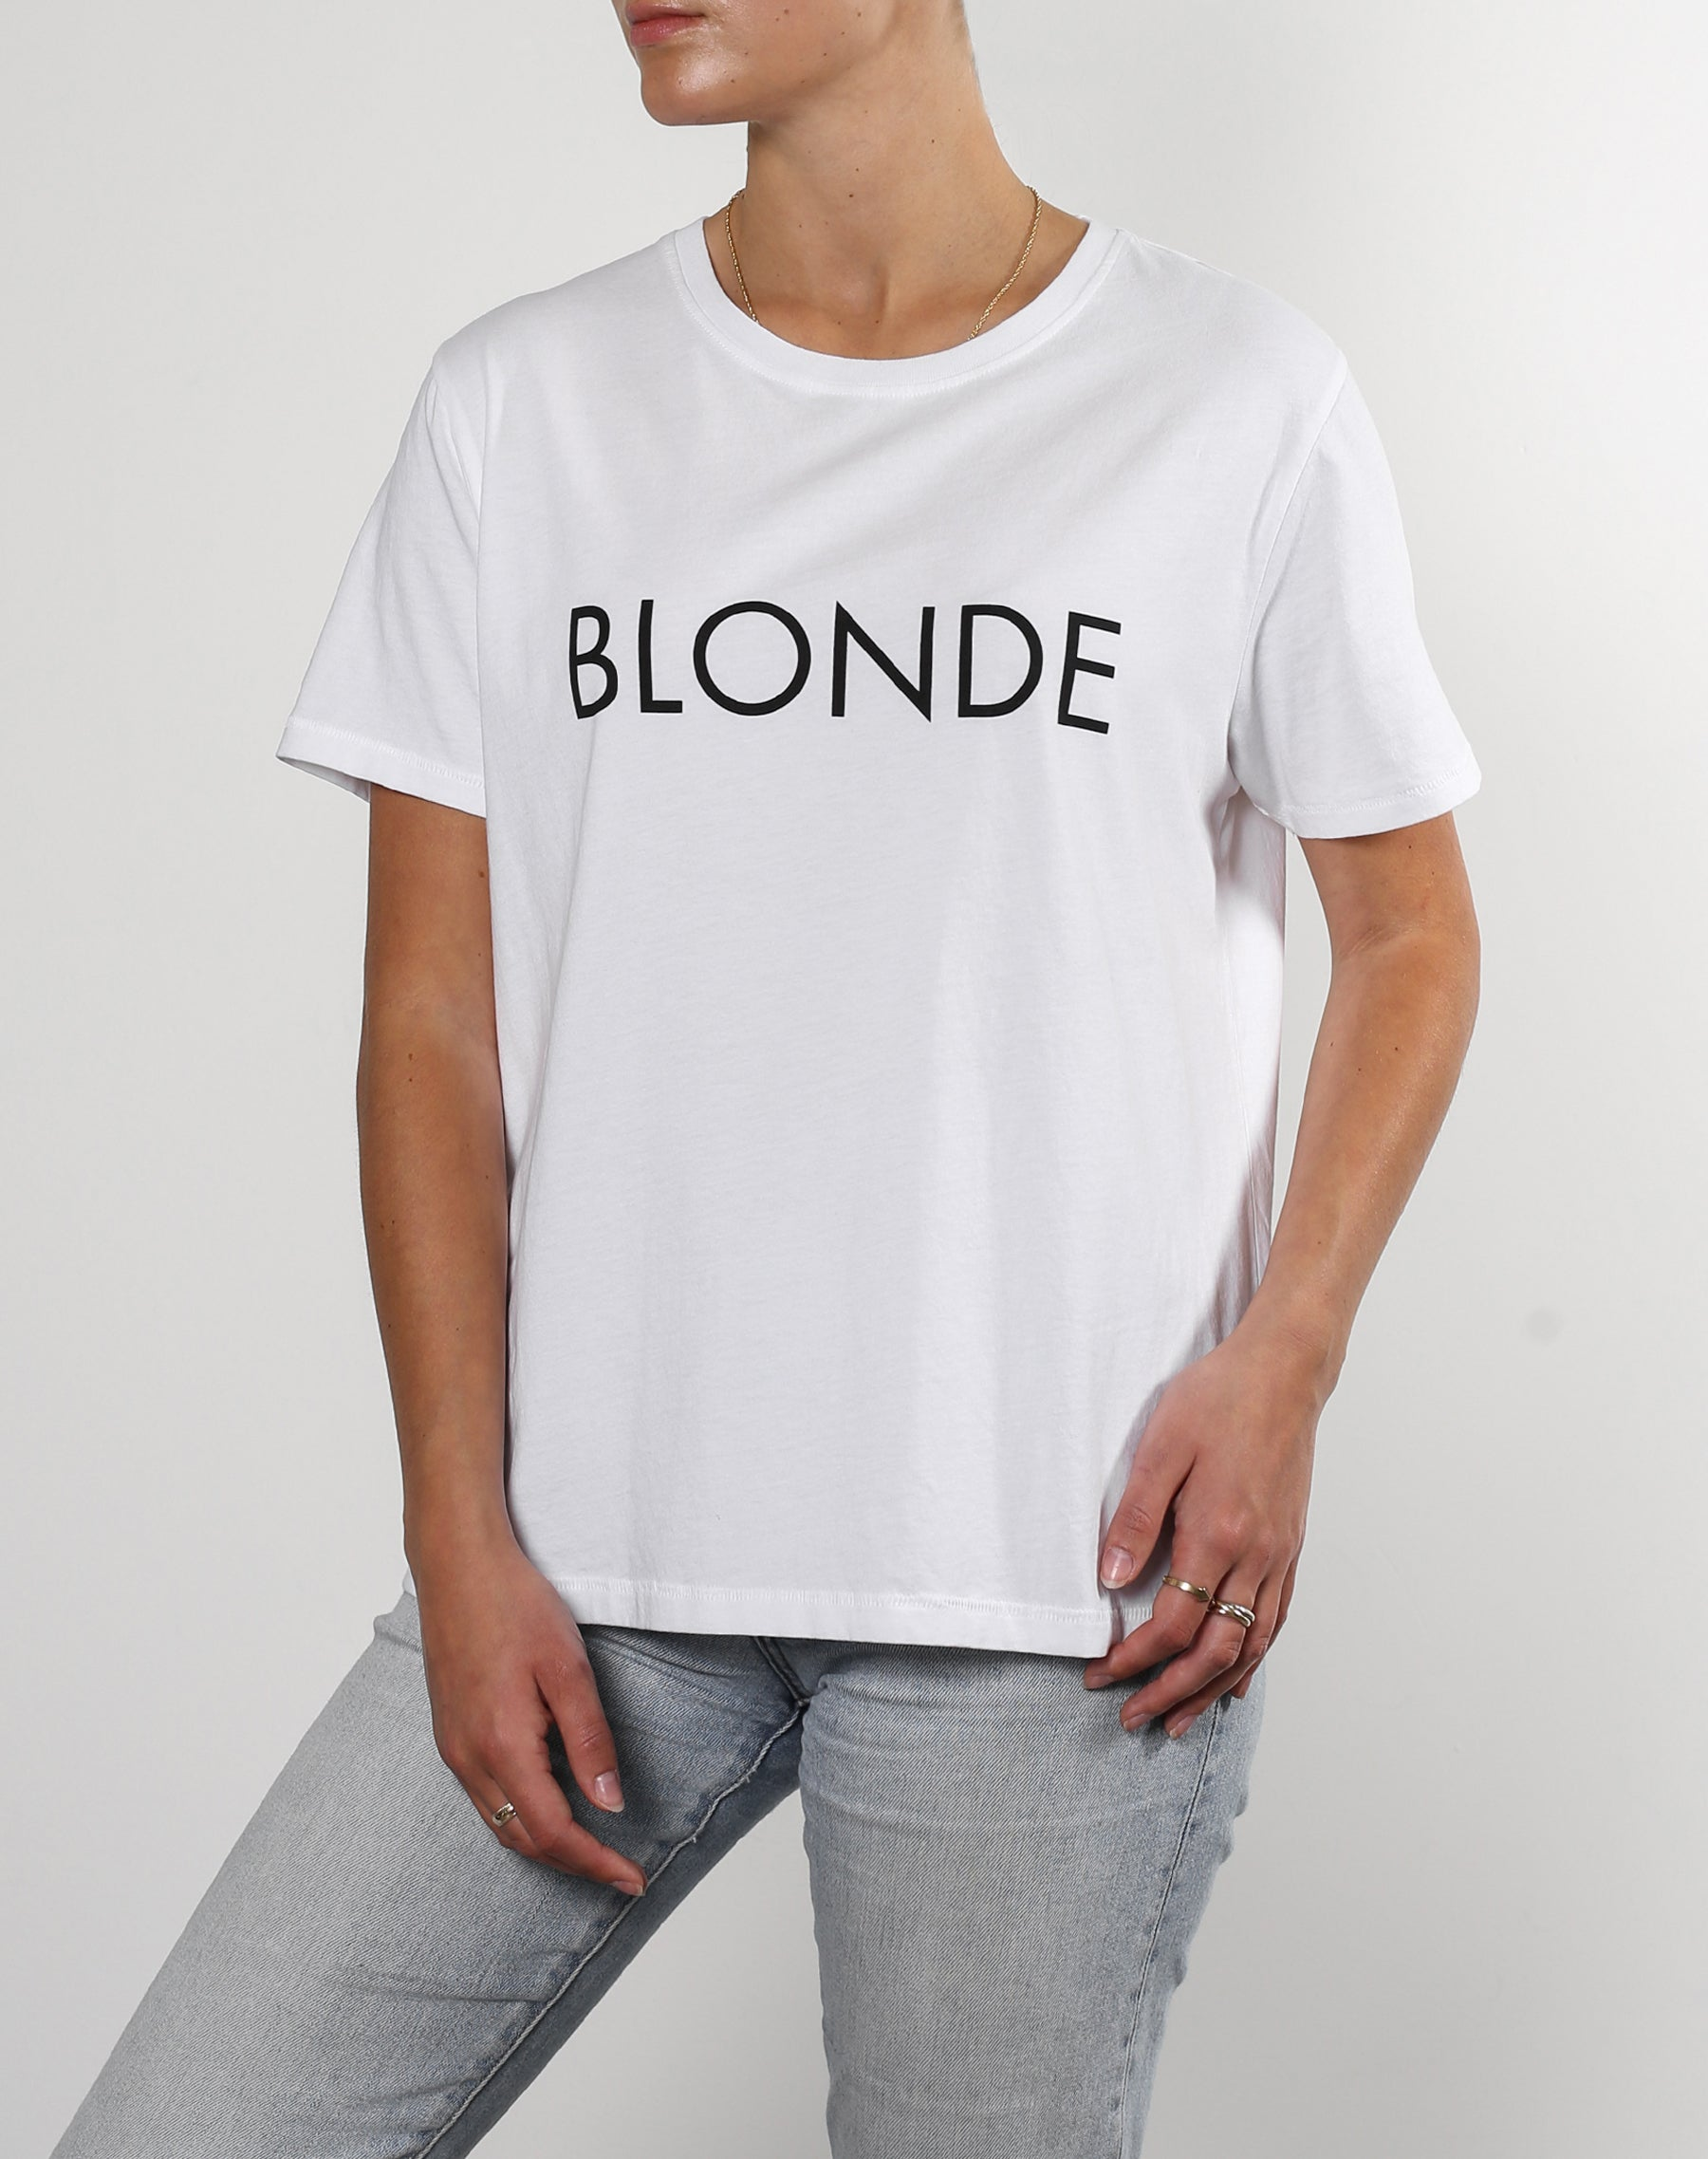 This is a photo of a model wearing the blonde classic crew neck tee in white by brunette the label.